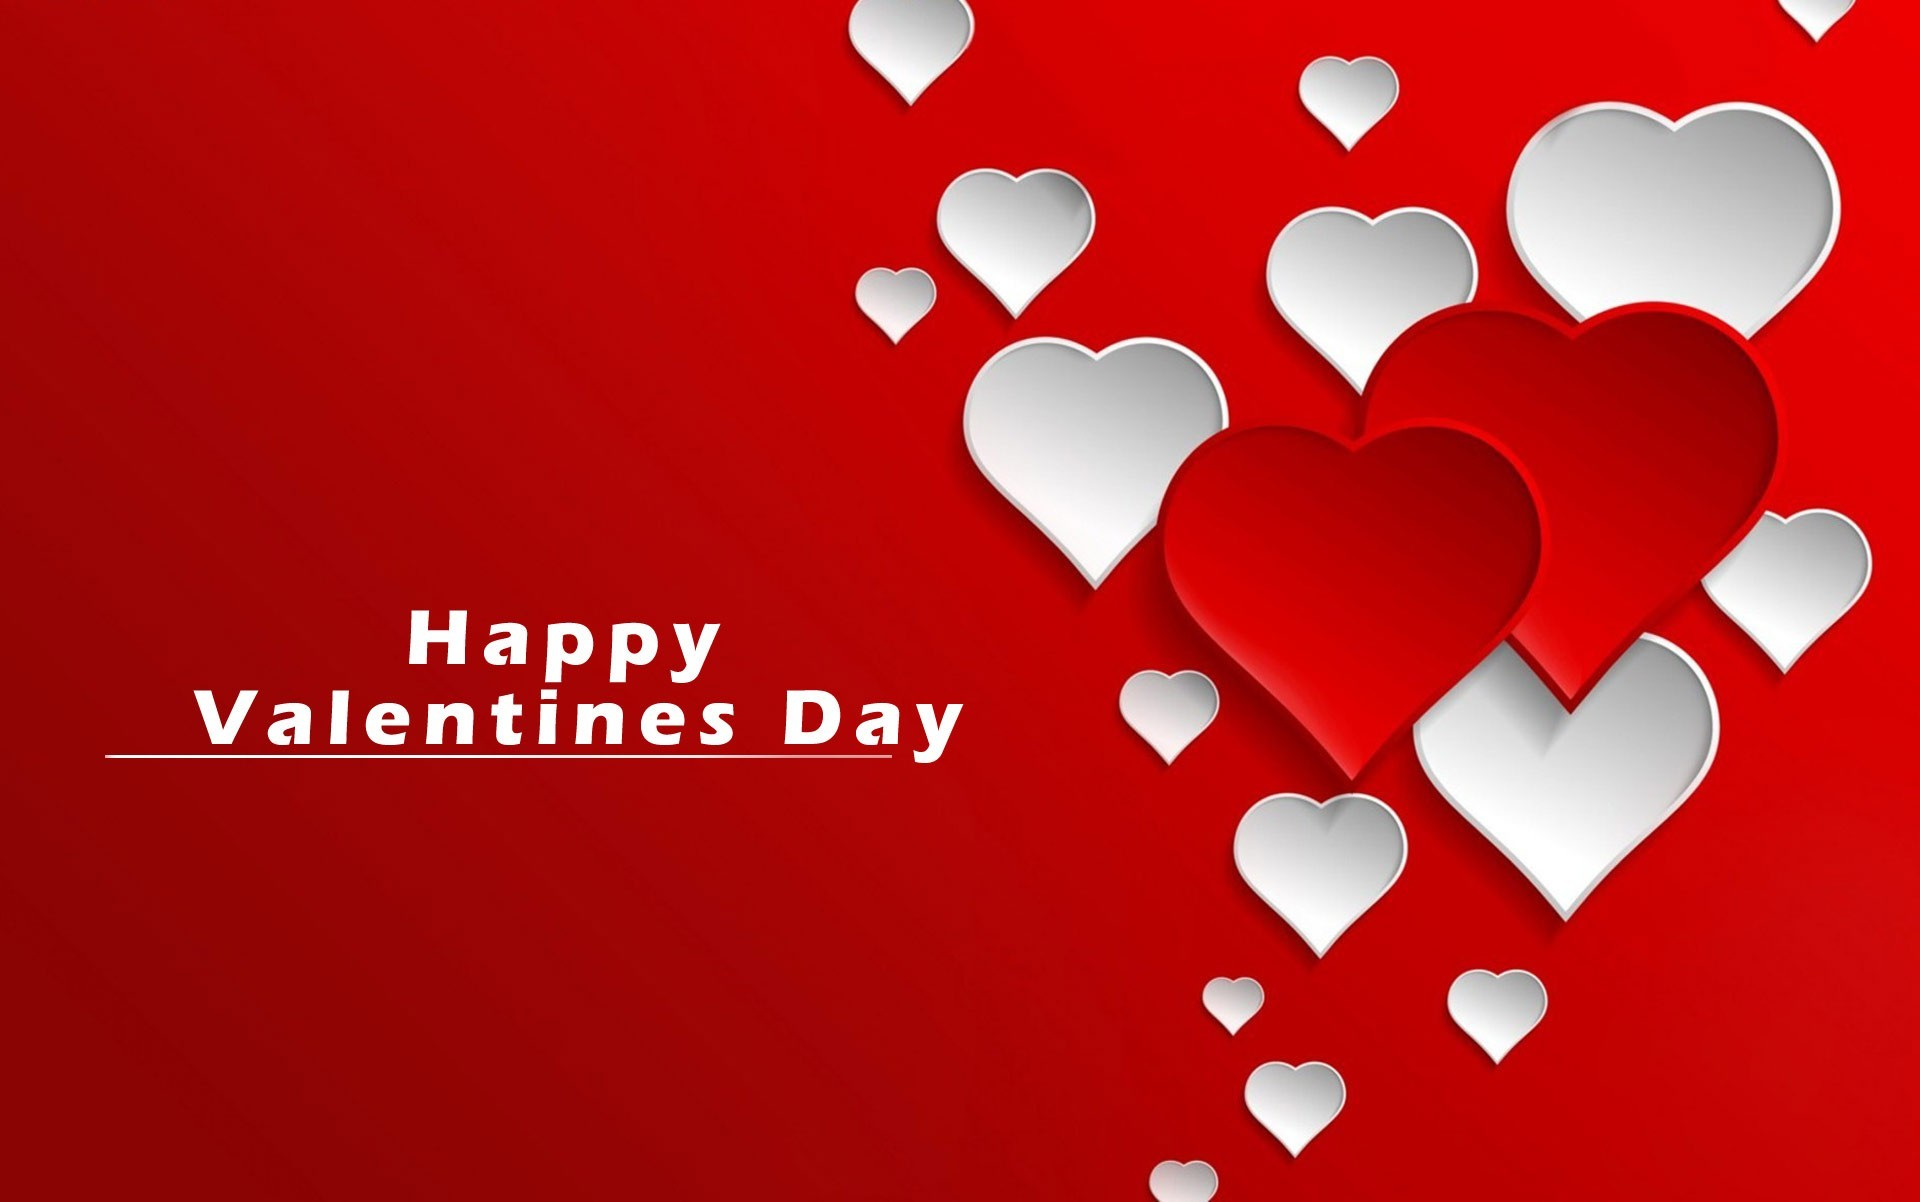 Happy Valentines' Day 2017 HD 3D Images for Desktop Backgrounds